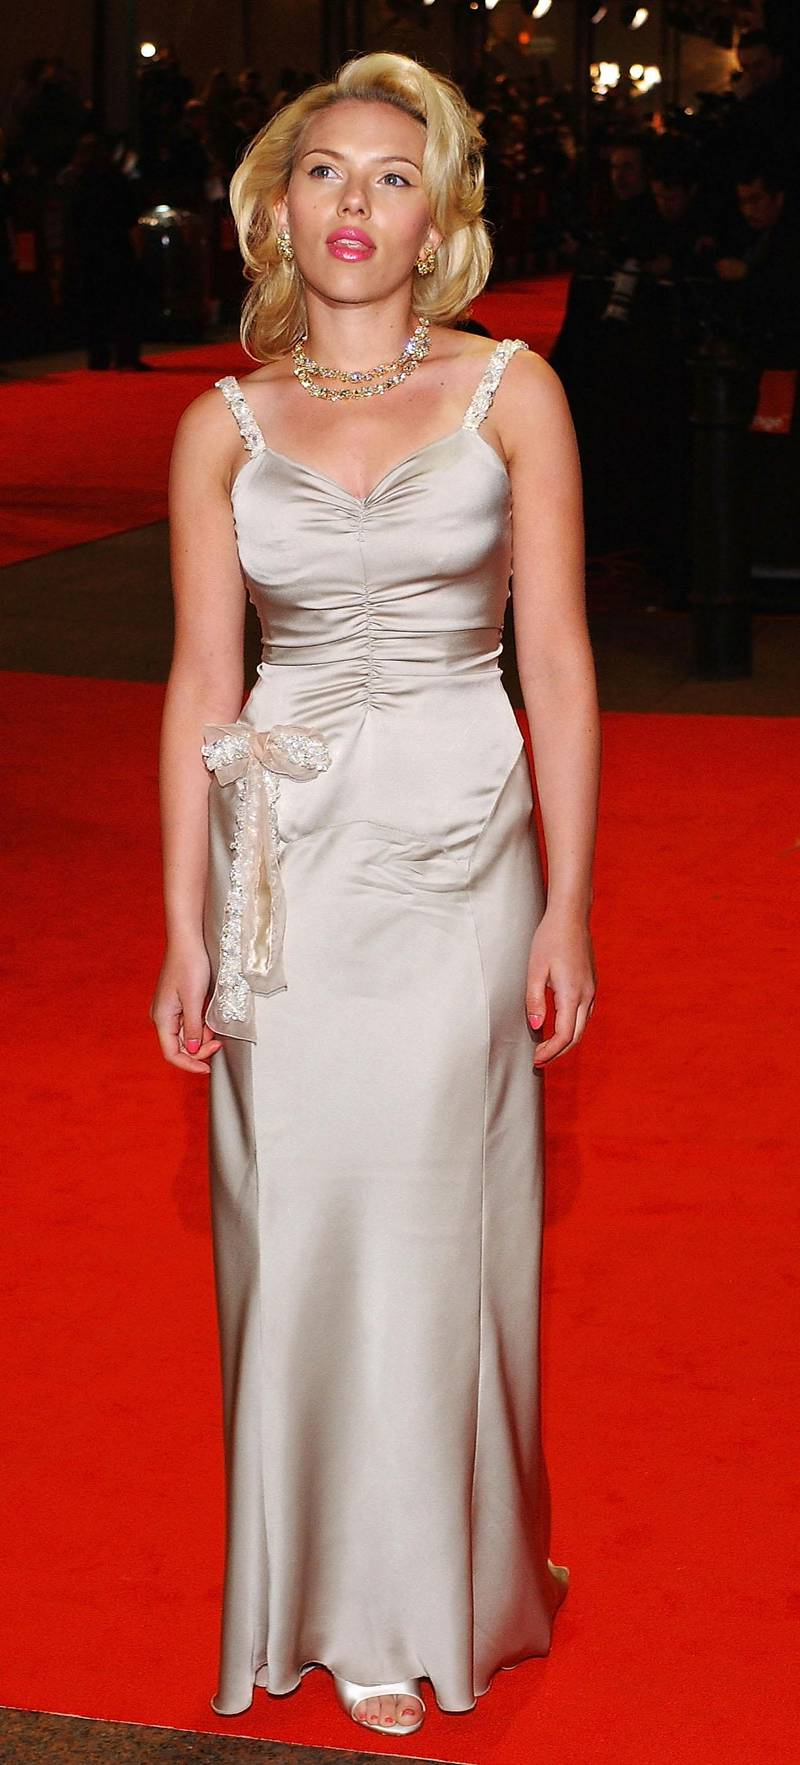 """LONDON - FEBRUARY 15:  Actress Scarlett Johansson arrives at """"The Orange British Academy Film Awards"""" at The Odeon Leicester Square on February 15, 2004 in London. (Photo by Steve Finn/Getty Images)"""